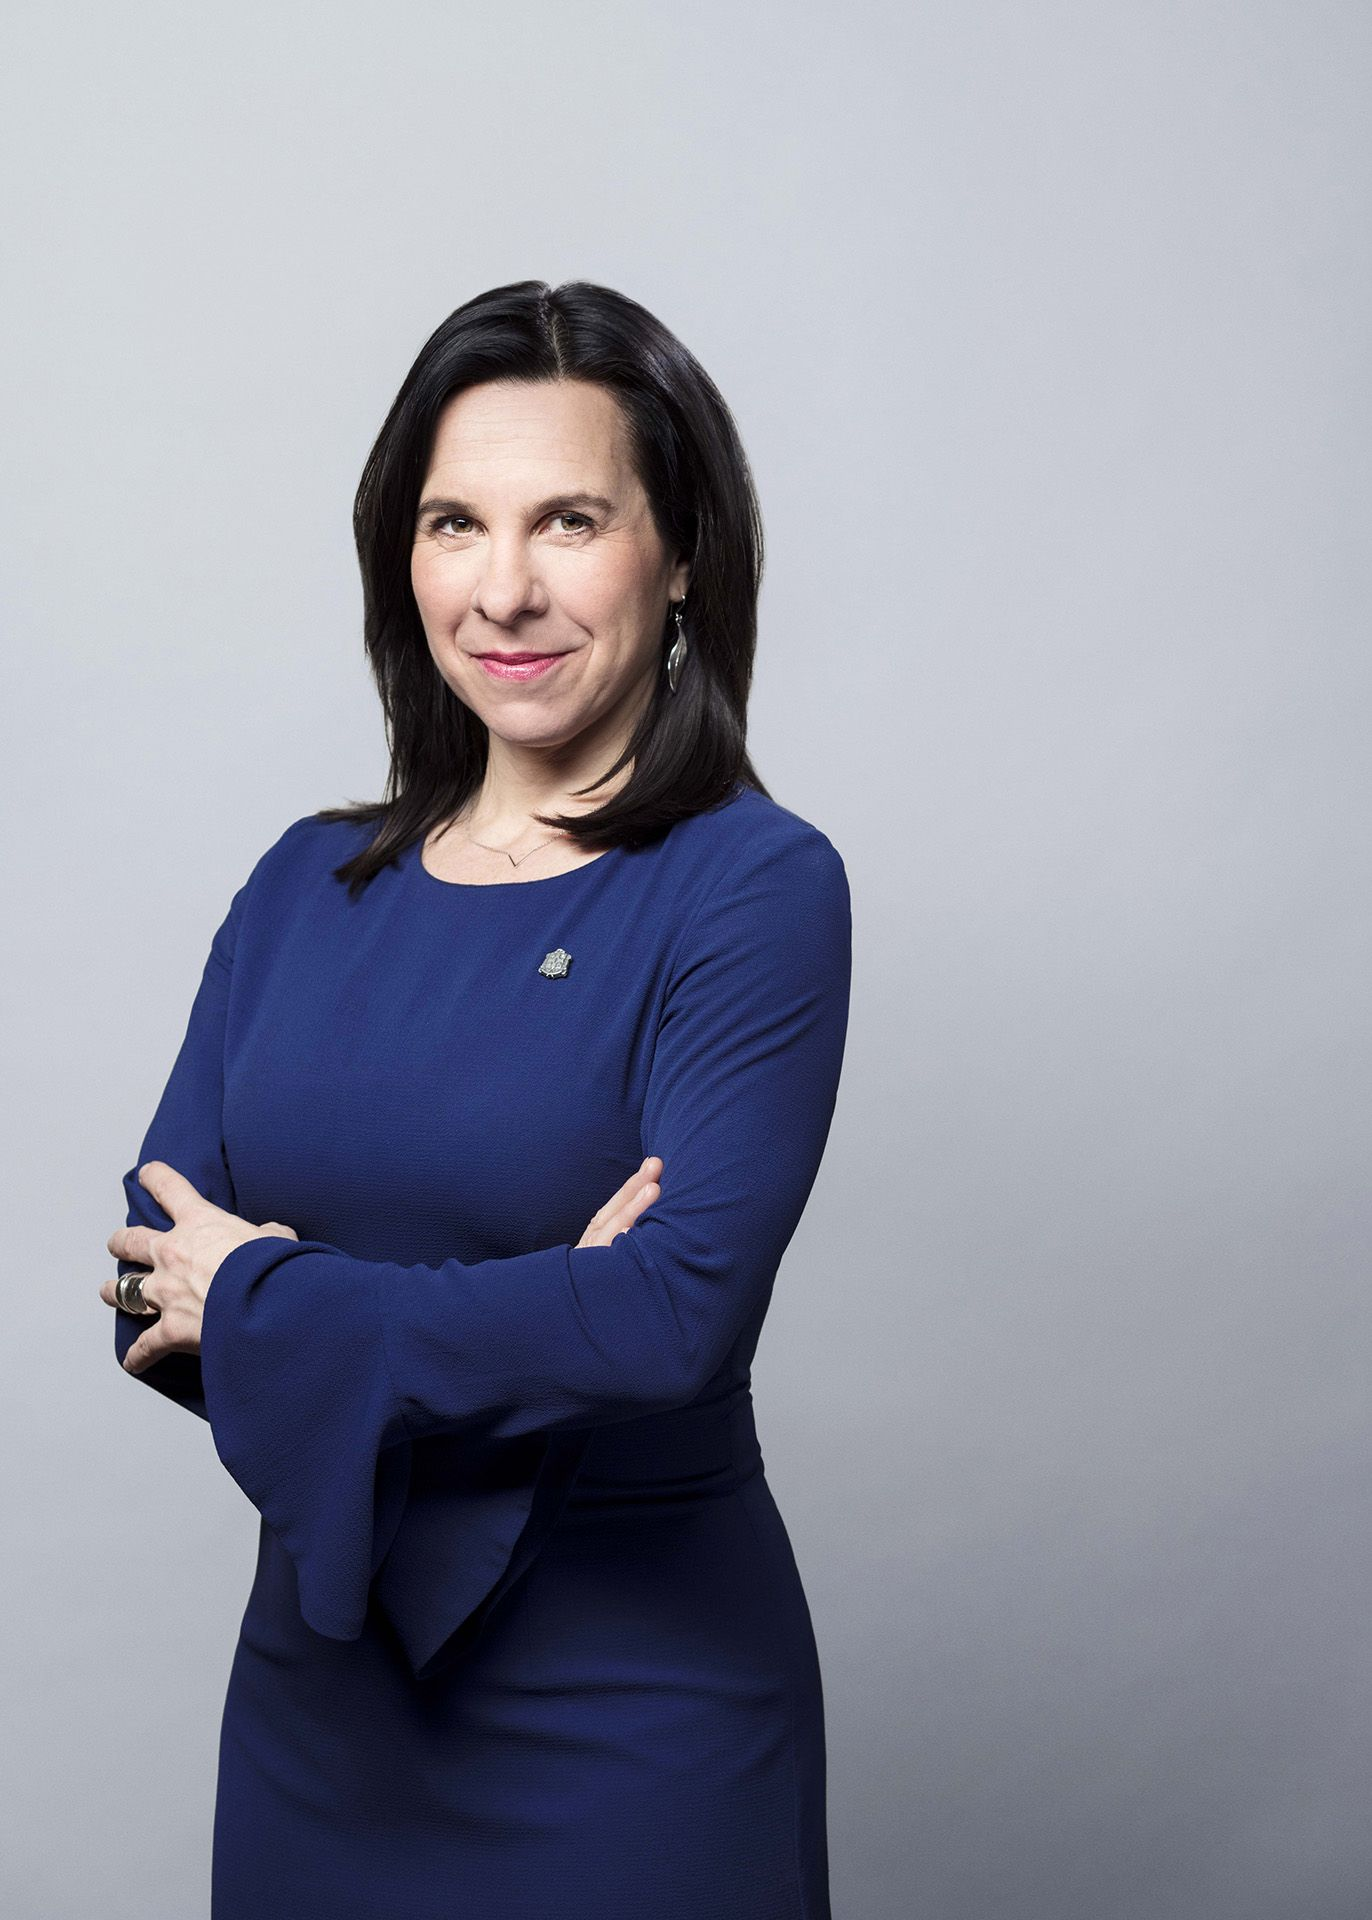 Mid portrait of Montreal mayor Valérie Plante wearing a blue dress and standing with her arms crossed in front of her.